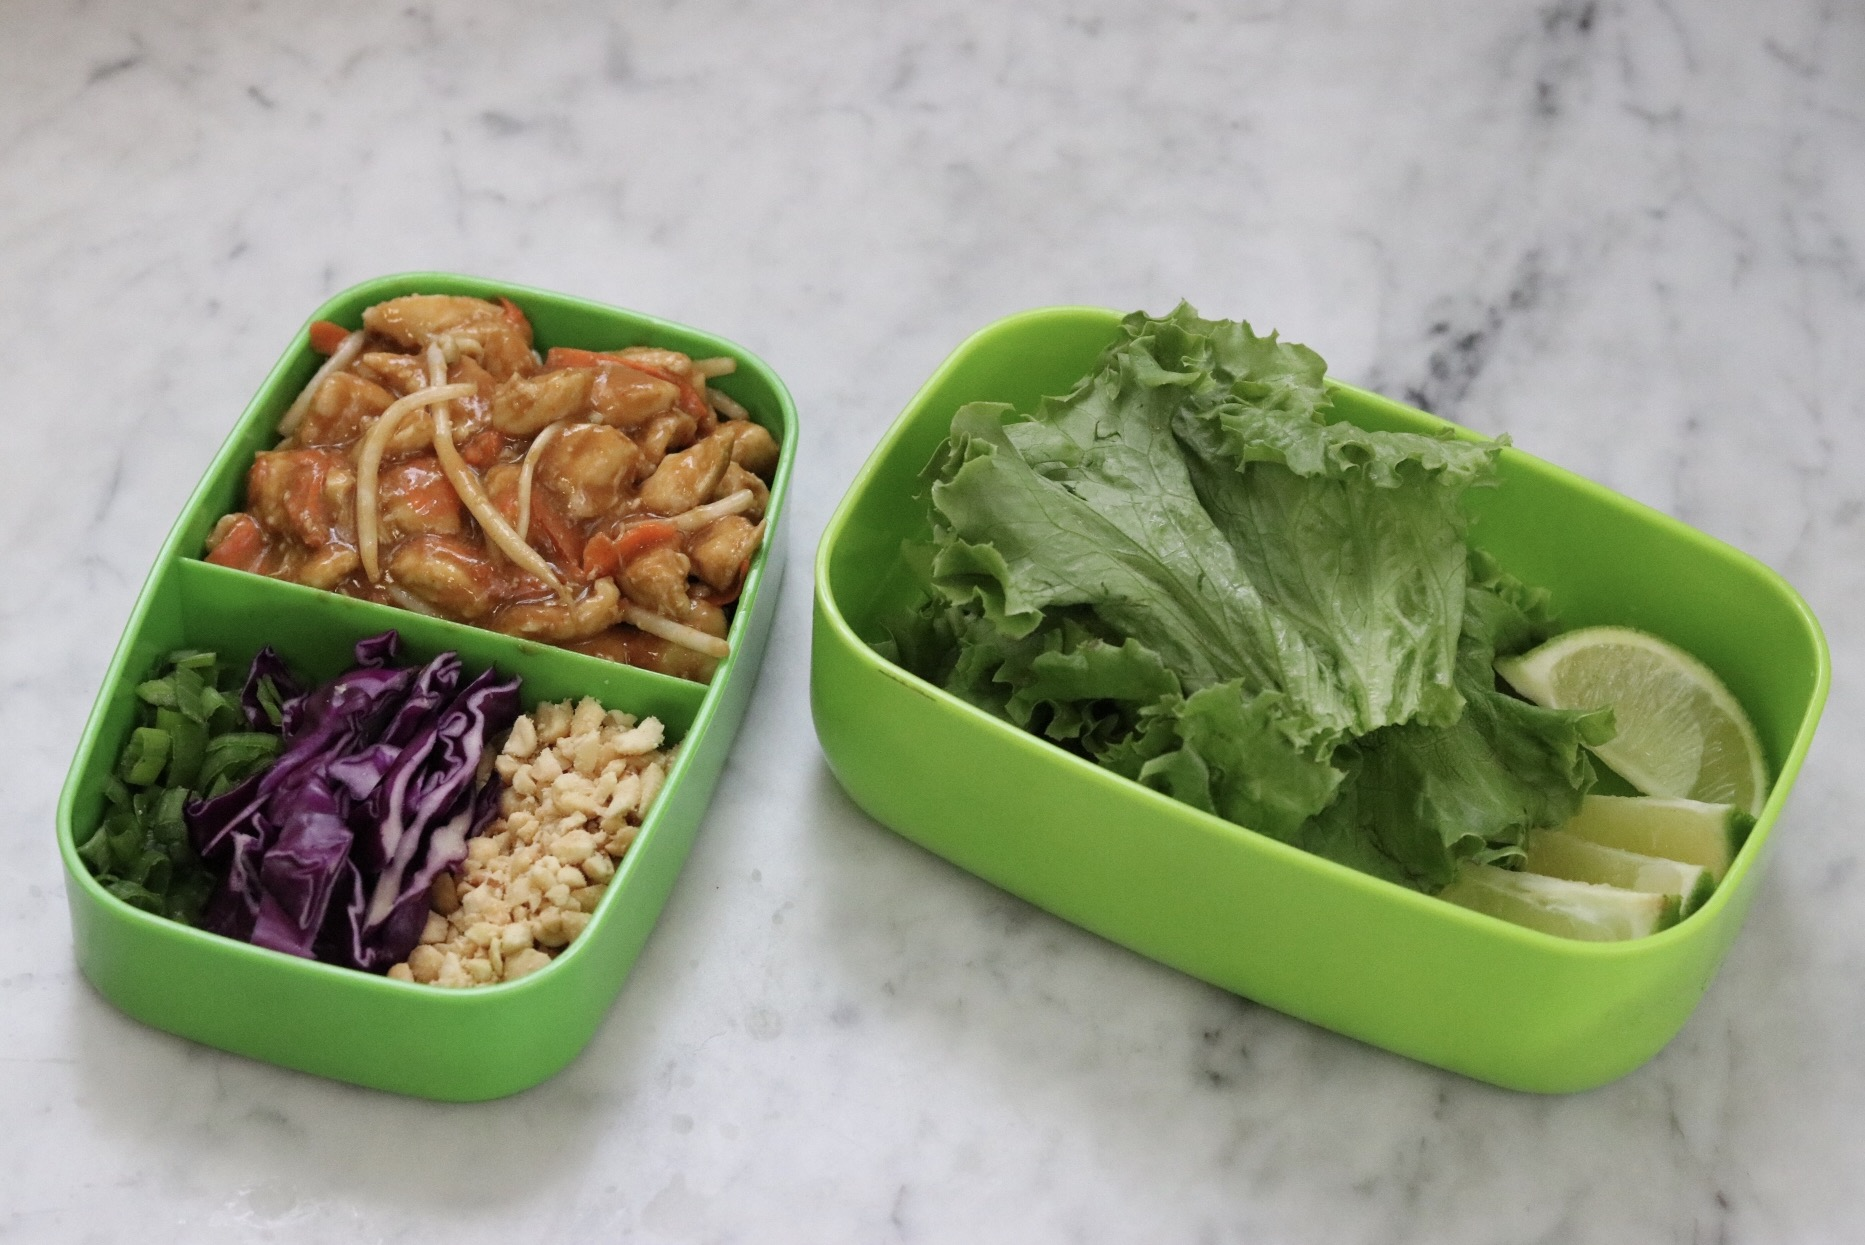 Inside you'll find a single-serving pad Thai-flavored lettuce wrap lunch that you can take wherever you're headed in your bento box. It takes just 25 minutes to prepare, so you can have it in no time!